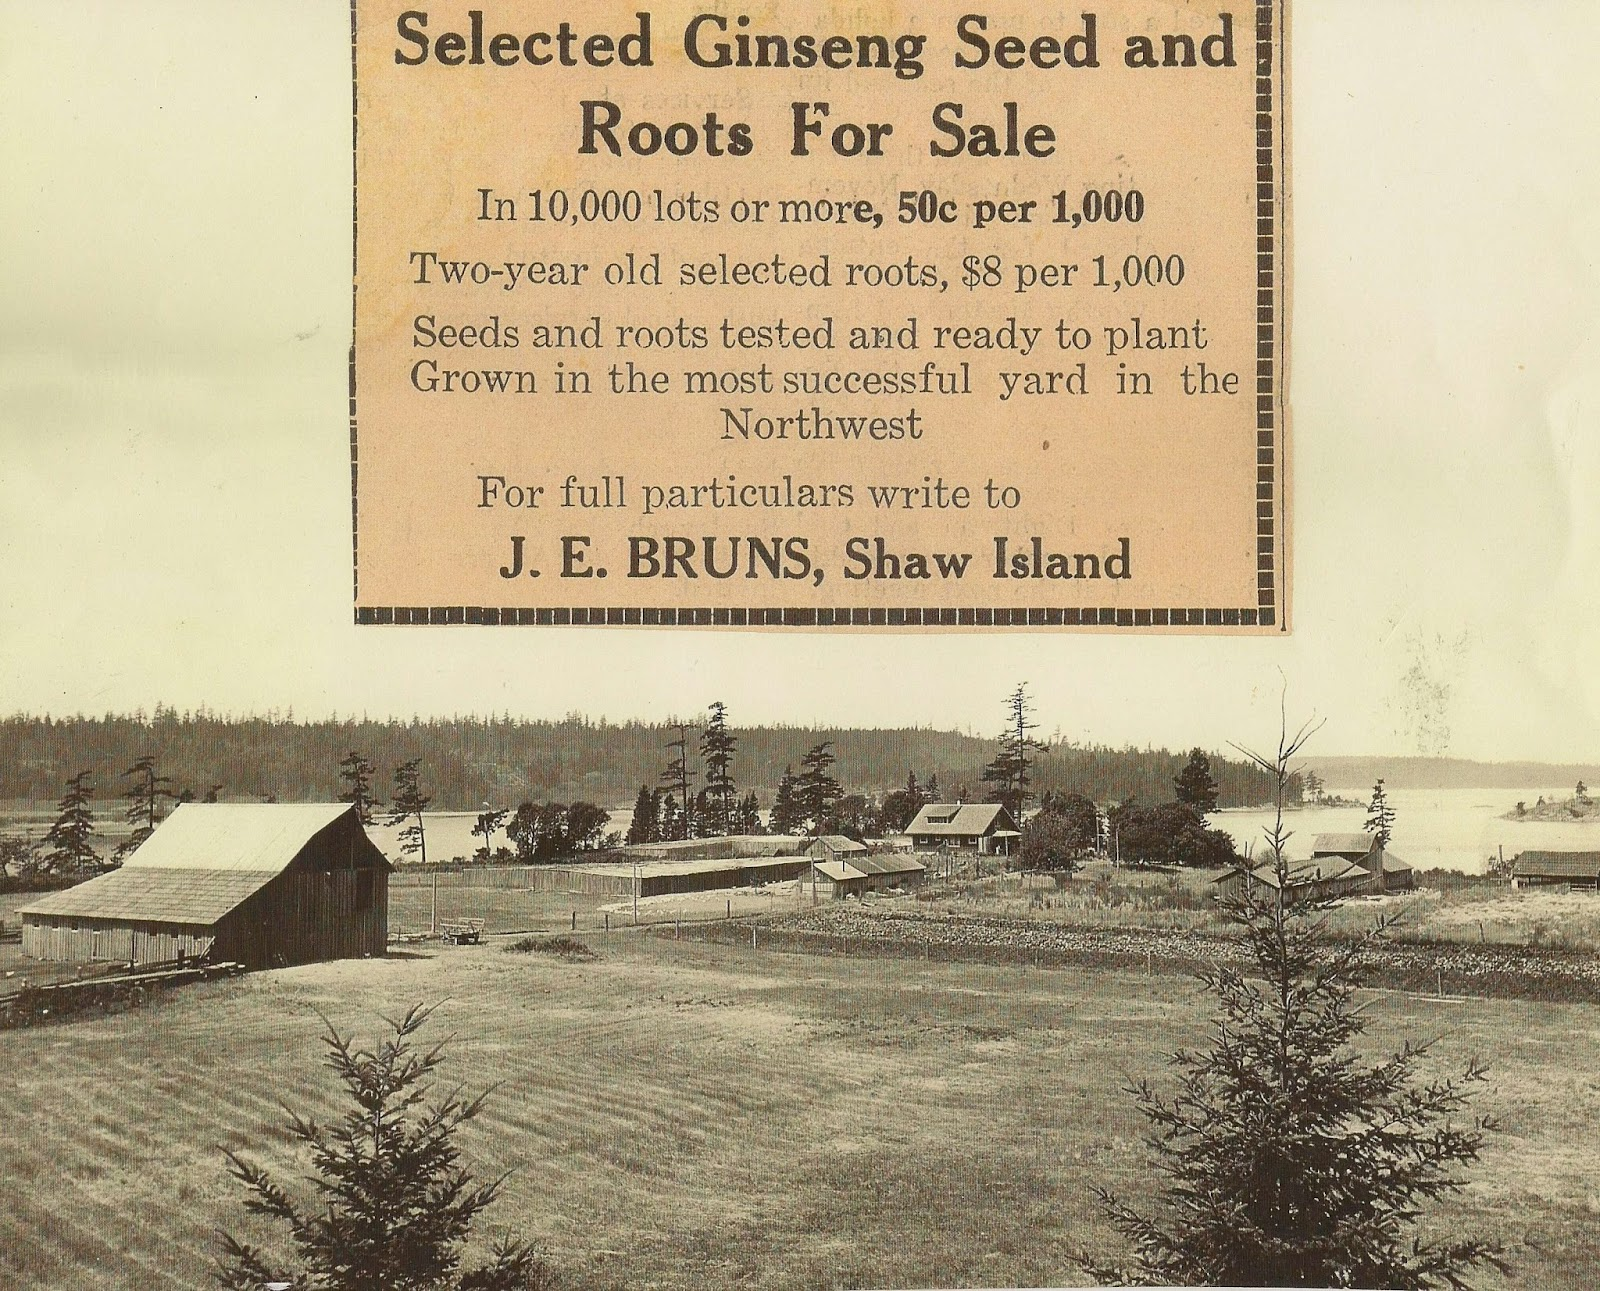 1910 WILD CHINESE GINSENG GROWING ON SHAW ISLAND